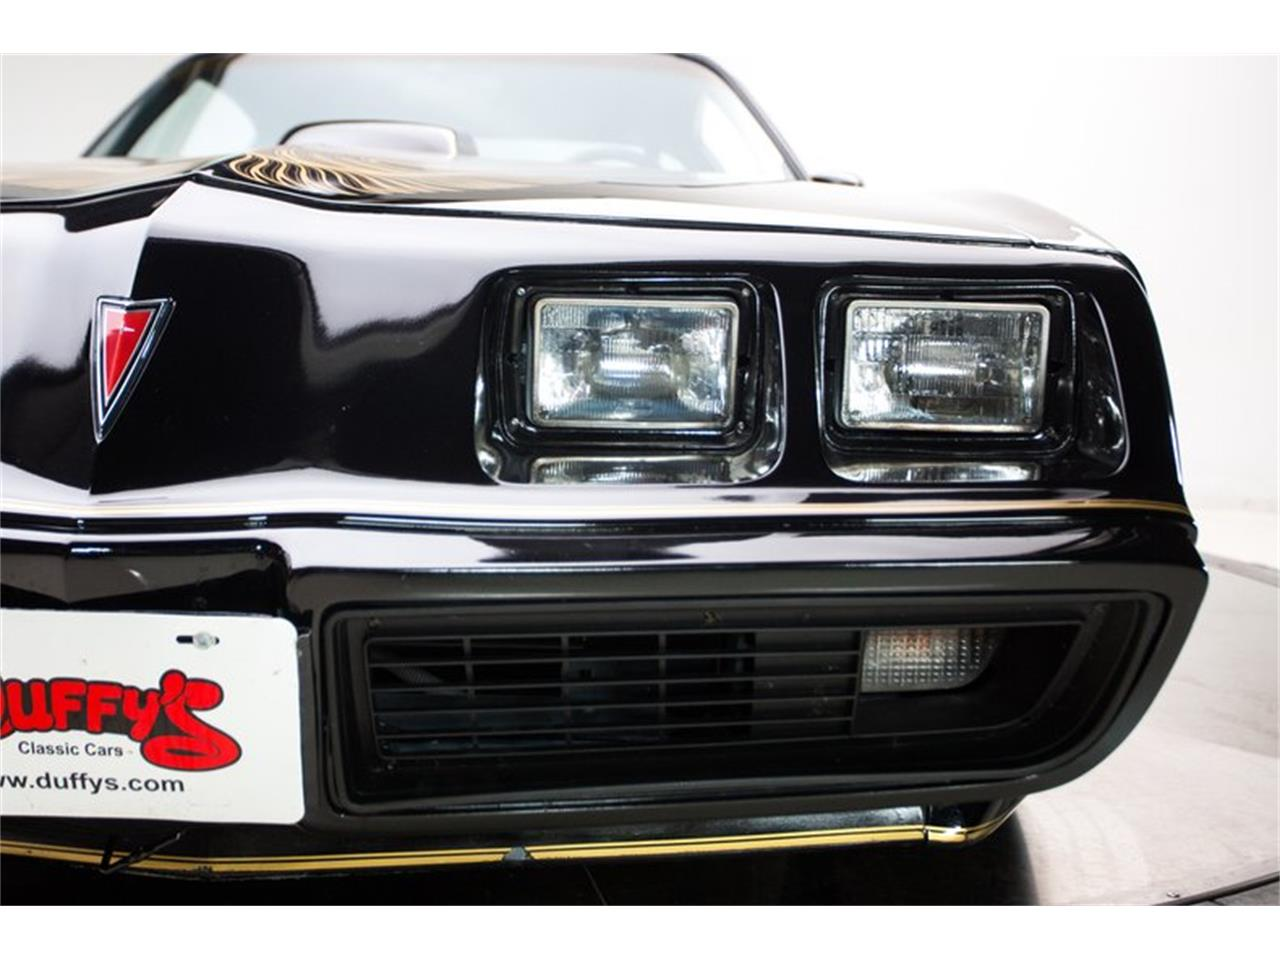 Large Picture of '81 Pontiac Firebird Trans Am located in Iowa Offered by Duffy's Classic Cars - OV9G